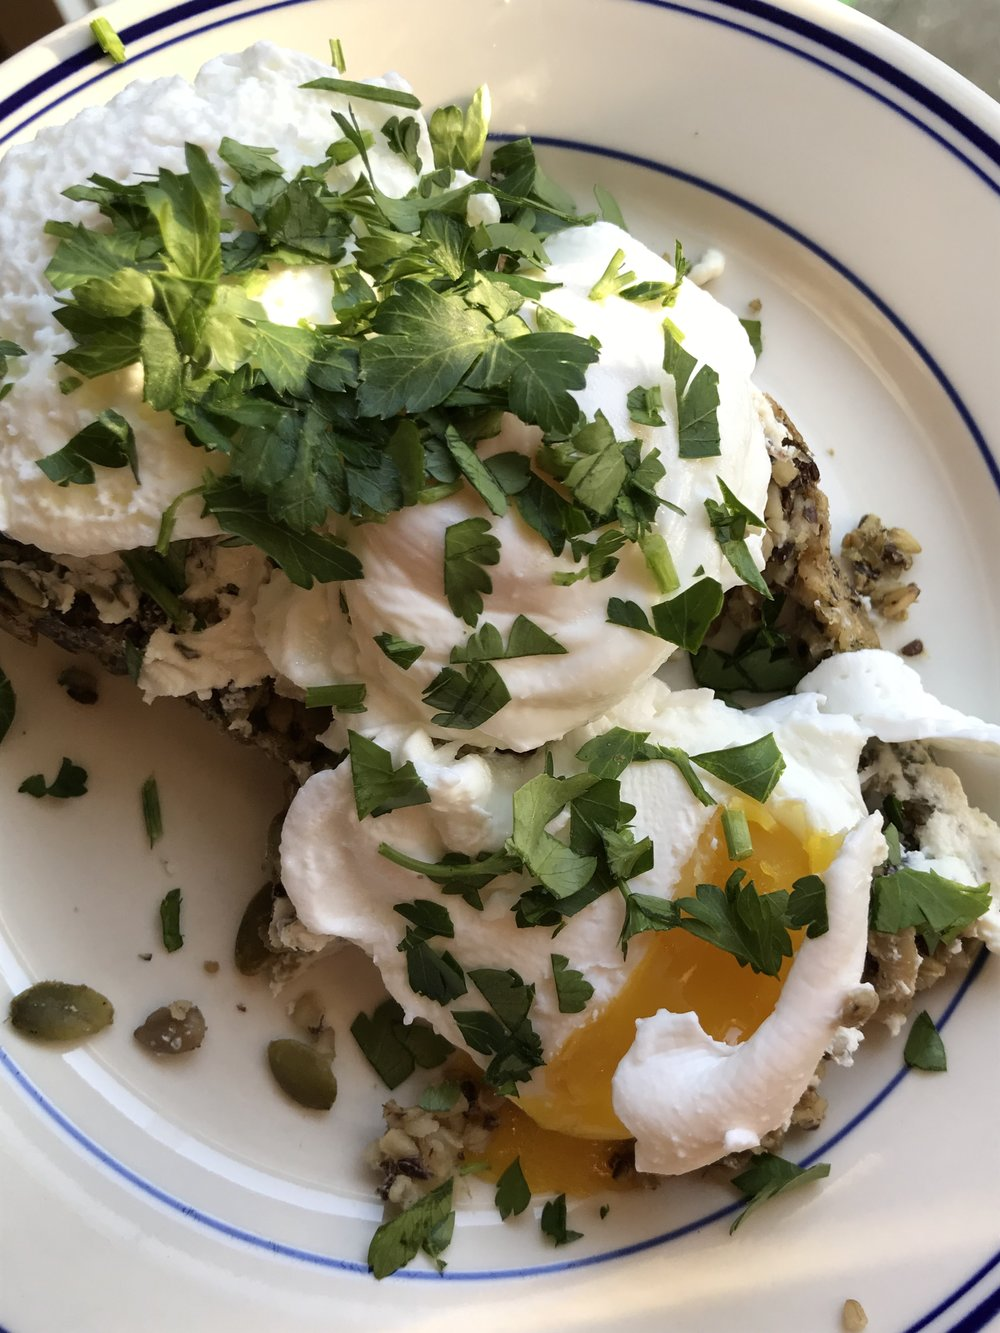 My homemade version of the Little Brother seeded loaf with goat cheese, poached eggs and parsley.